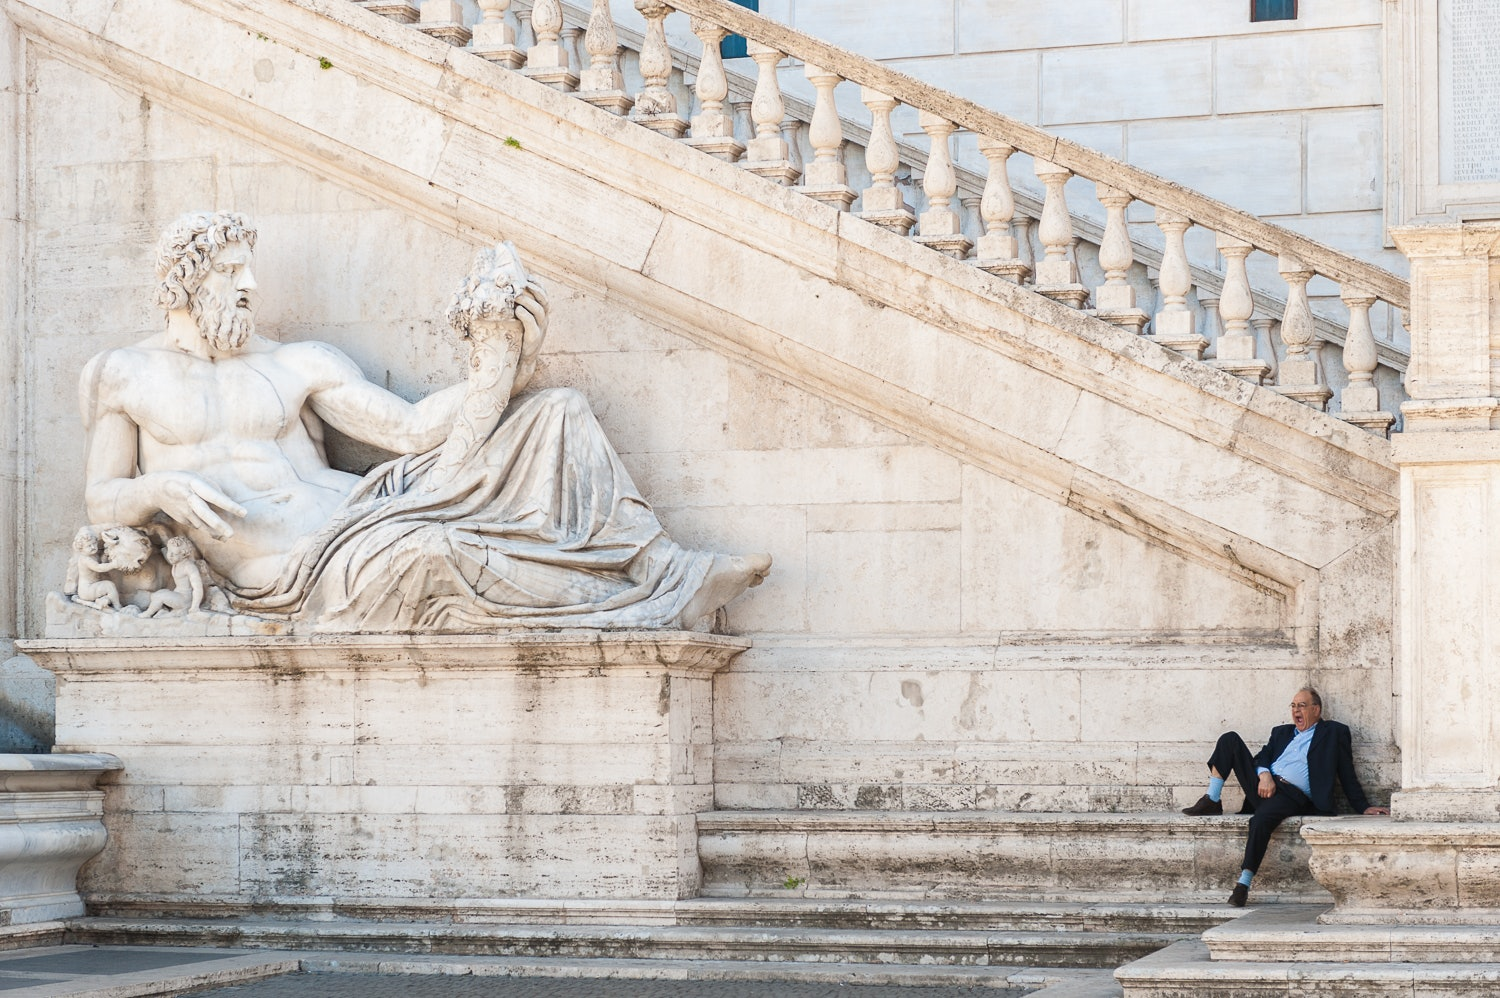 A man sits next to the monument outside Comune di Roma, Rome, Italy.